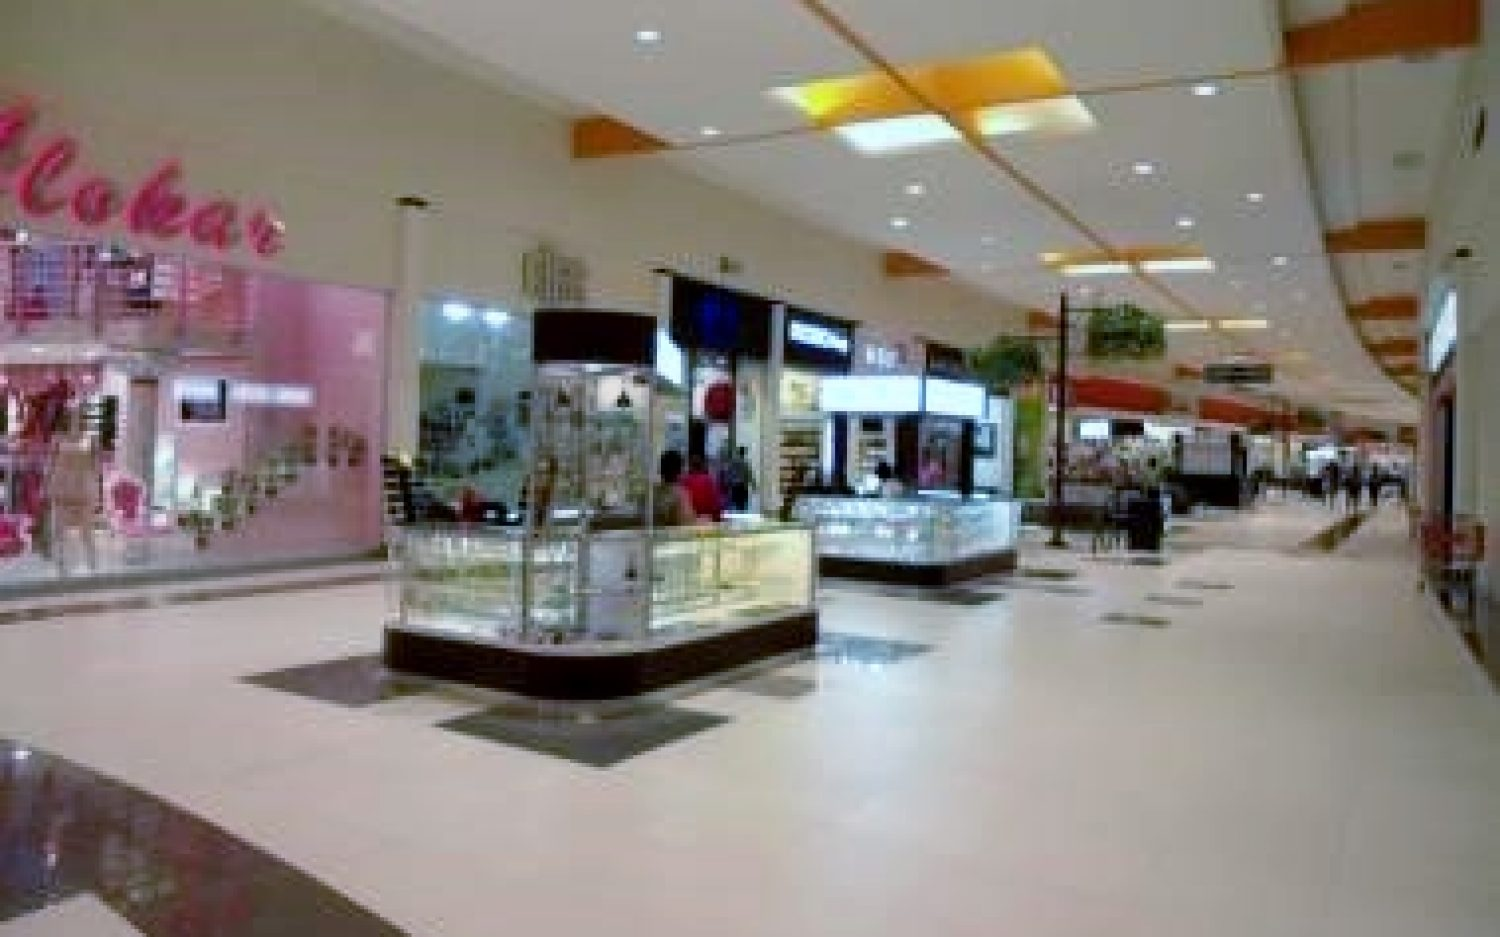 Co-Plaza Sendero Villahermosa (28)